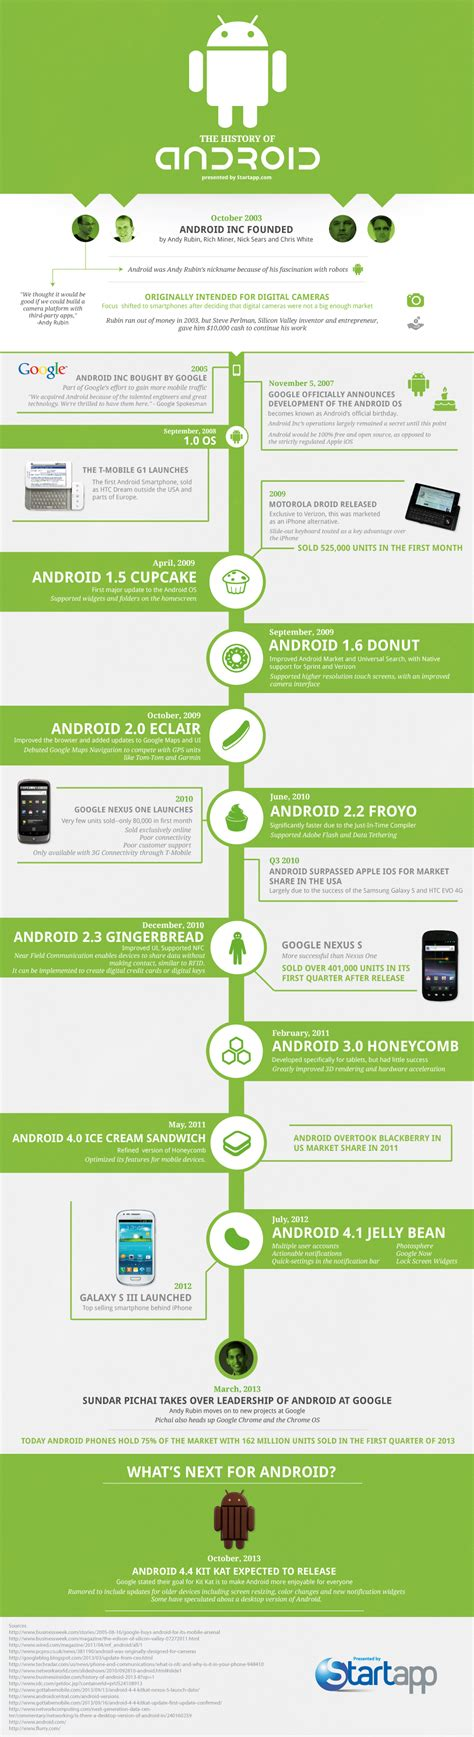 history of android 80 of smartphones unprotected from malware and the history of android infographic mobile minute